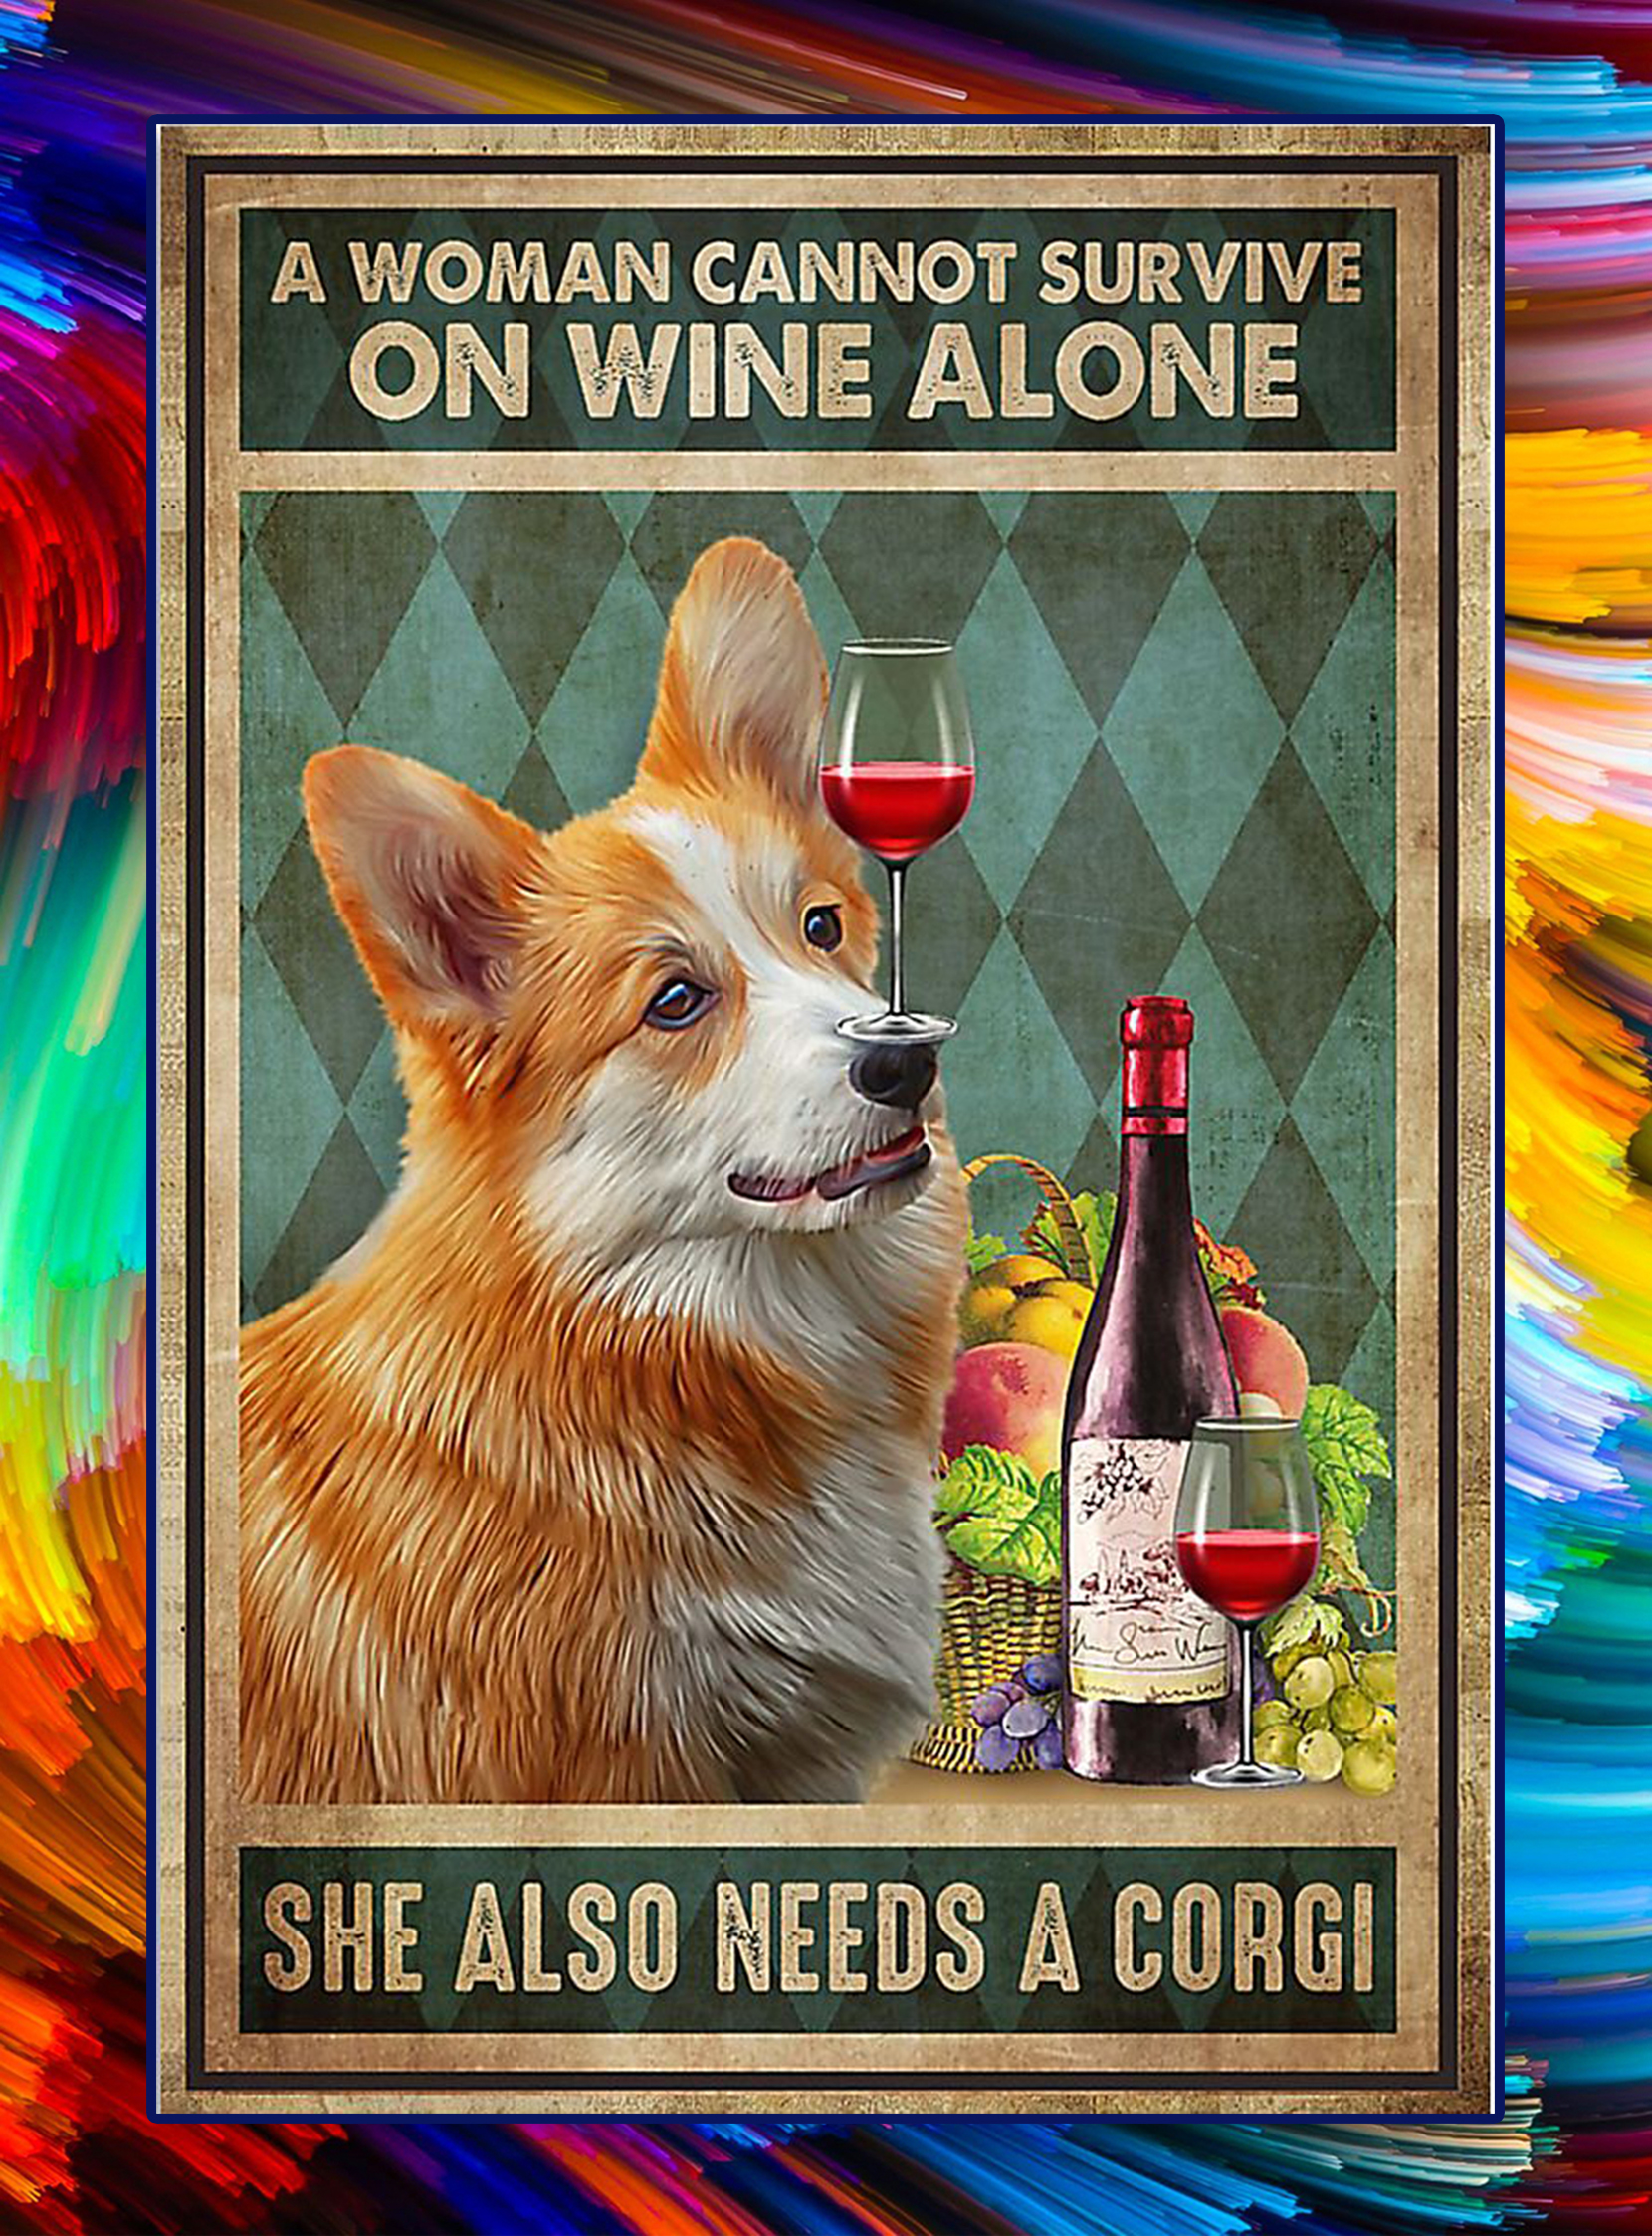 A woman cannot survive on wine alone she also needs a corgi poster - A2